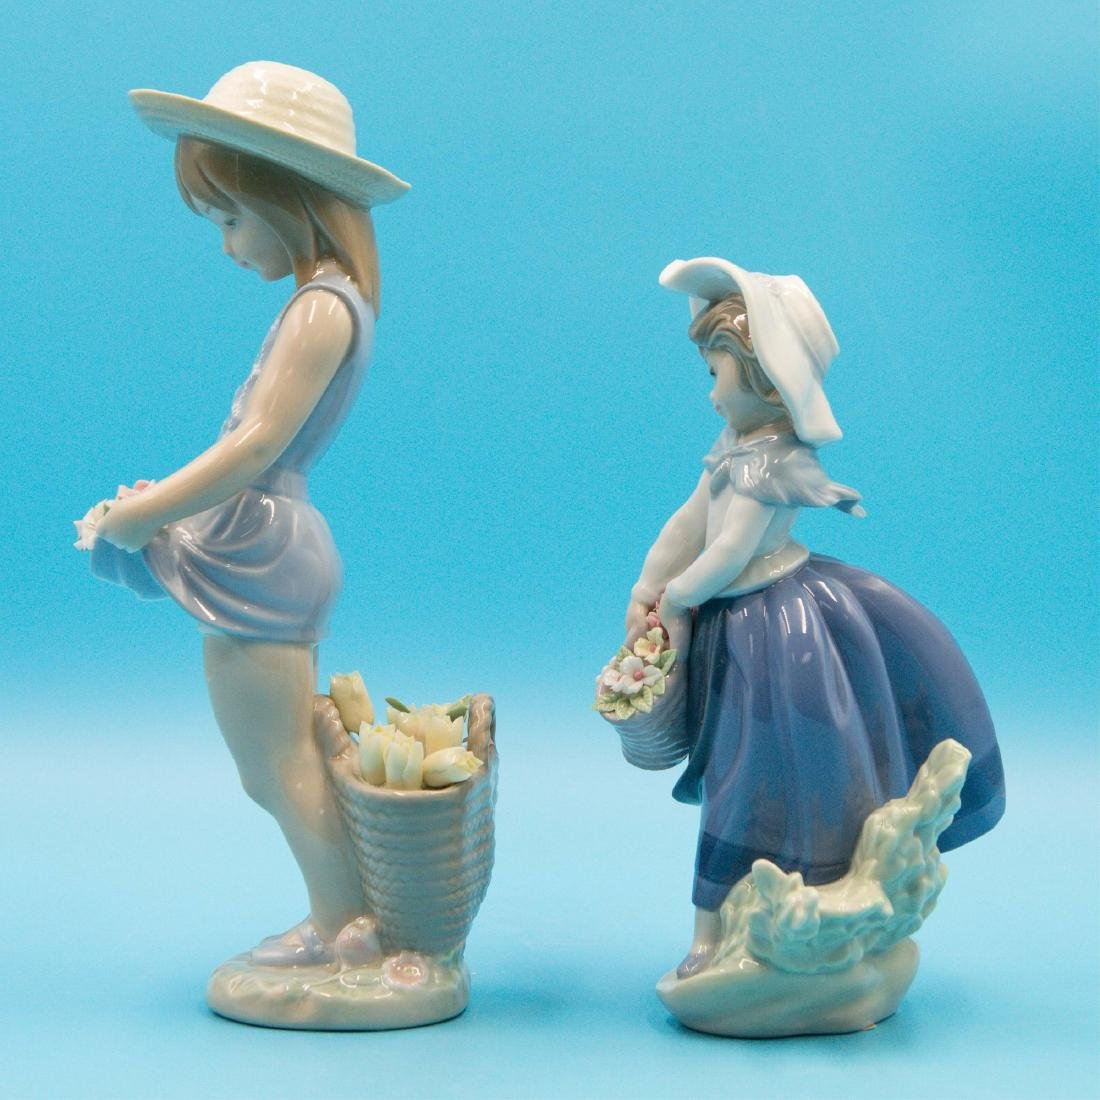 LLADRO MY FLOWERS AND PRETTY PICKINGS FIGURINES - 2